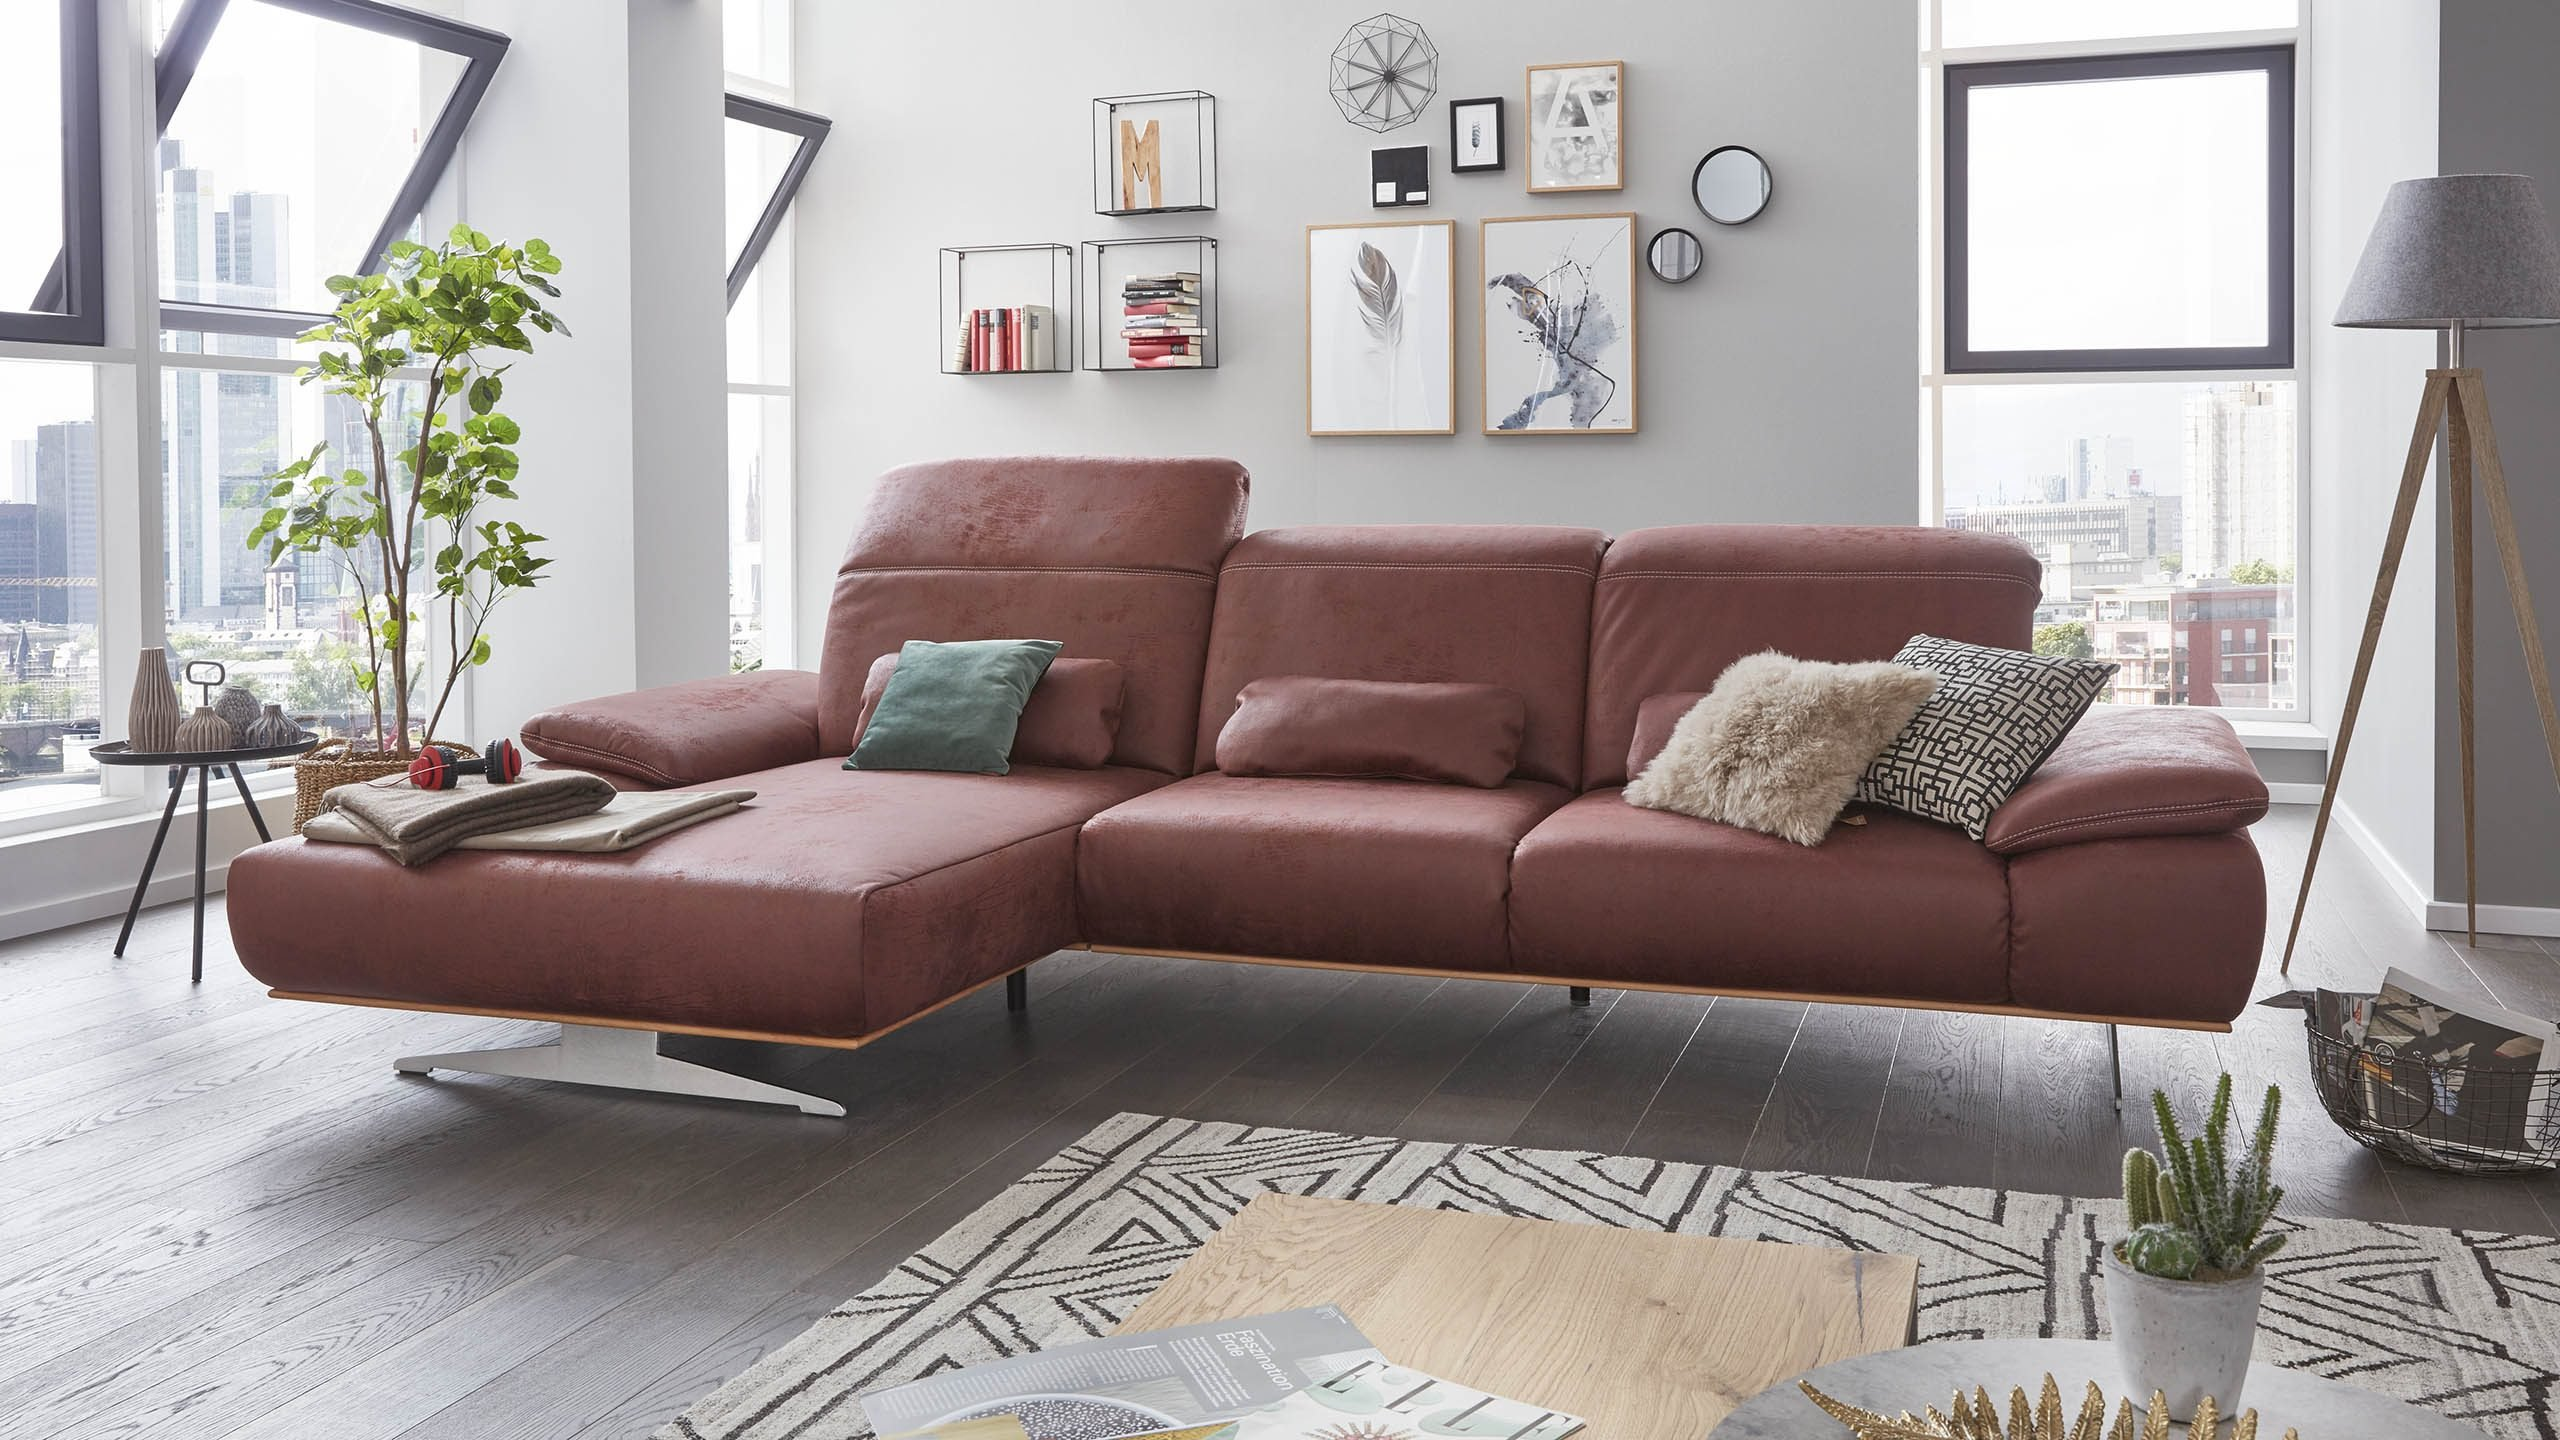 Interliving Sofas Der Neuen Kollektion 2019 Interliving